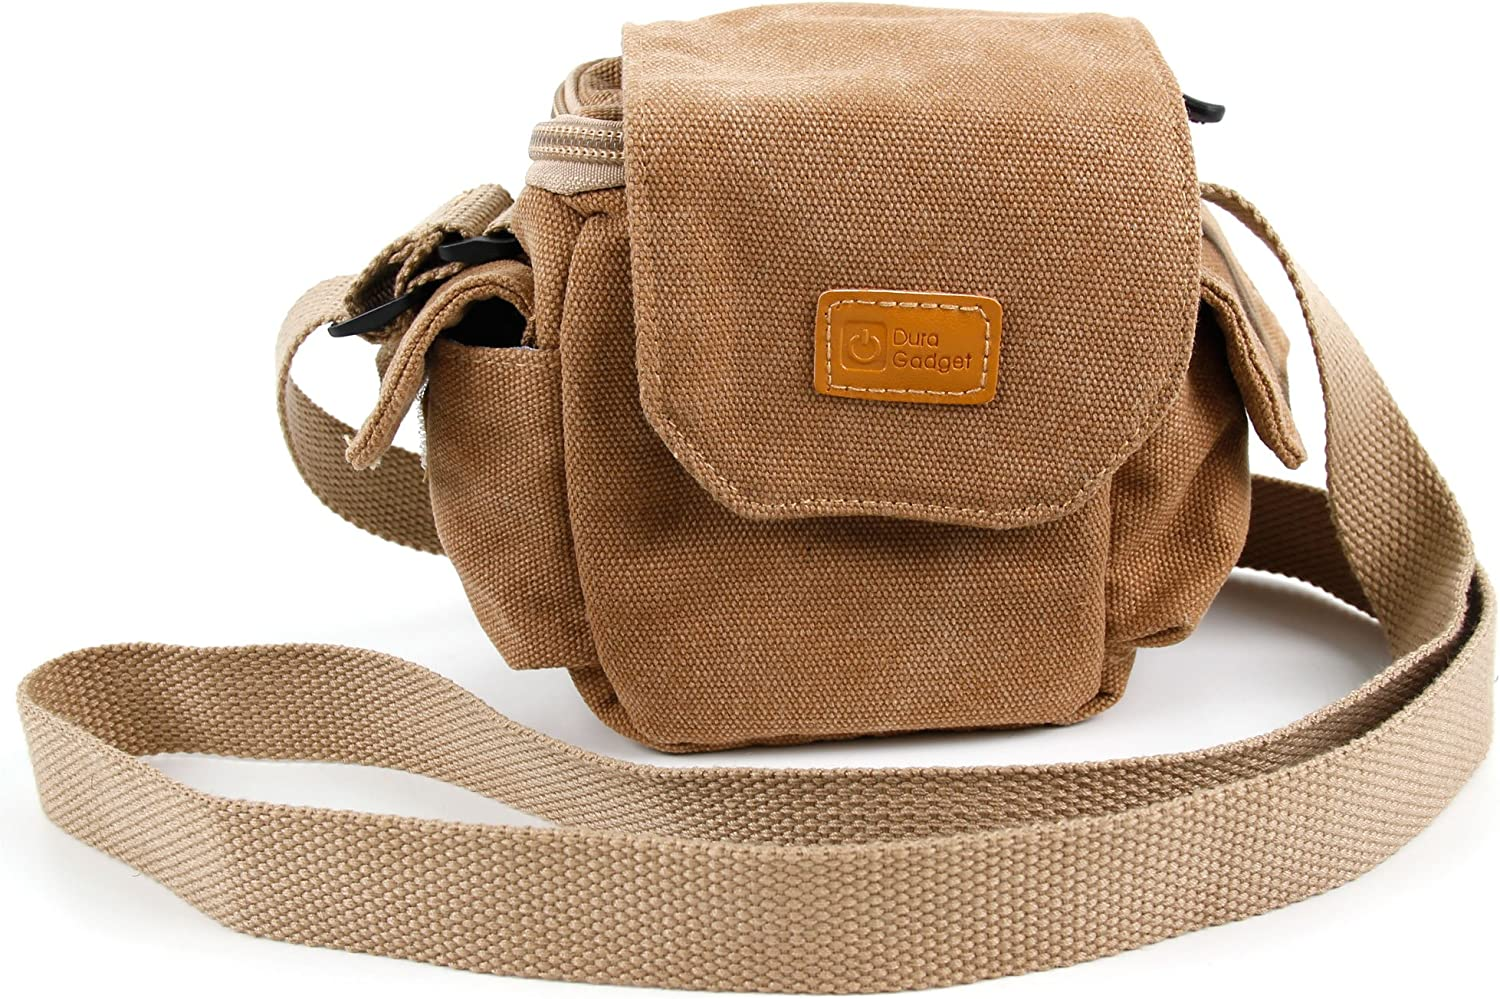 DURAGADGET Tan-Brown Small Sized Canvas Carry Bag with Customizable Interior Storage Compartment /& Adjustable Shoulder Strap Compatible with The TEC.Bean X902 BlackWidow Mini RC Quadcopter